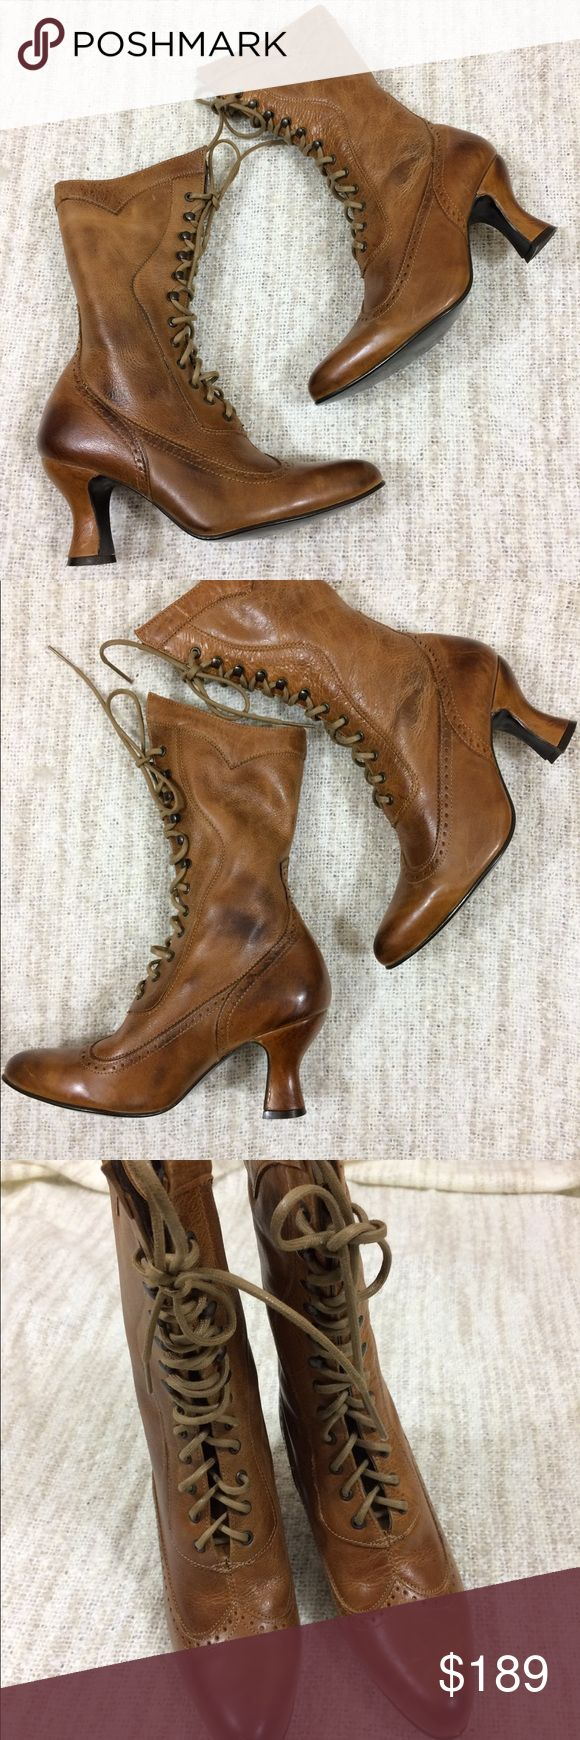 Oak Tree Farms Granny Steampunk Leather Lace Boots Gently used with a few minor scratches to the leather and light variations in the color ❤️ absolutely gorgeous and great for any Victorian era lover ❤️ high quality, made in Mexico ❤️ size 6.5 Oak Tree Farms Shoes Lace Up Boots